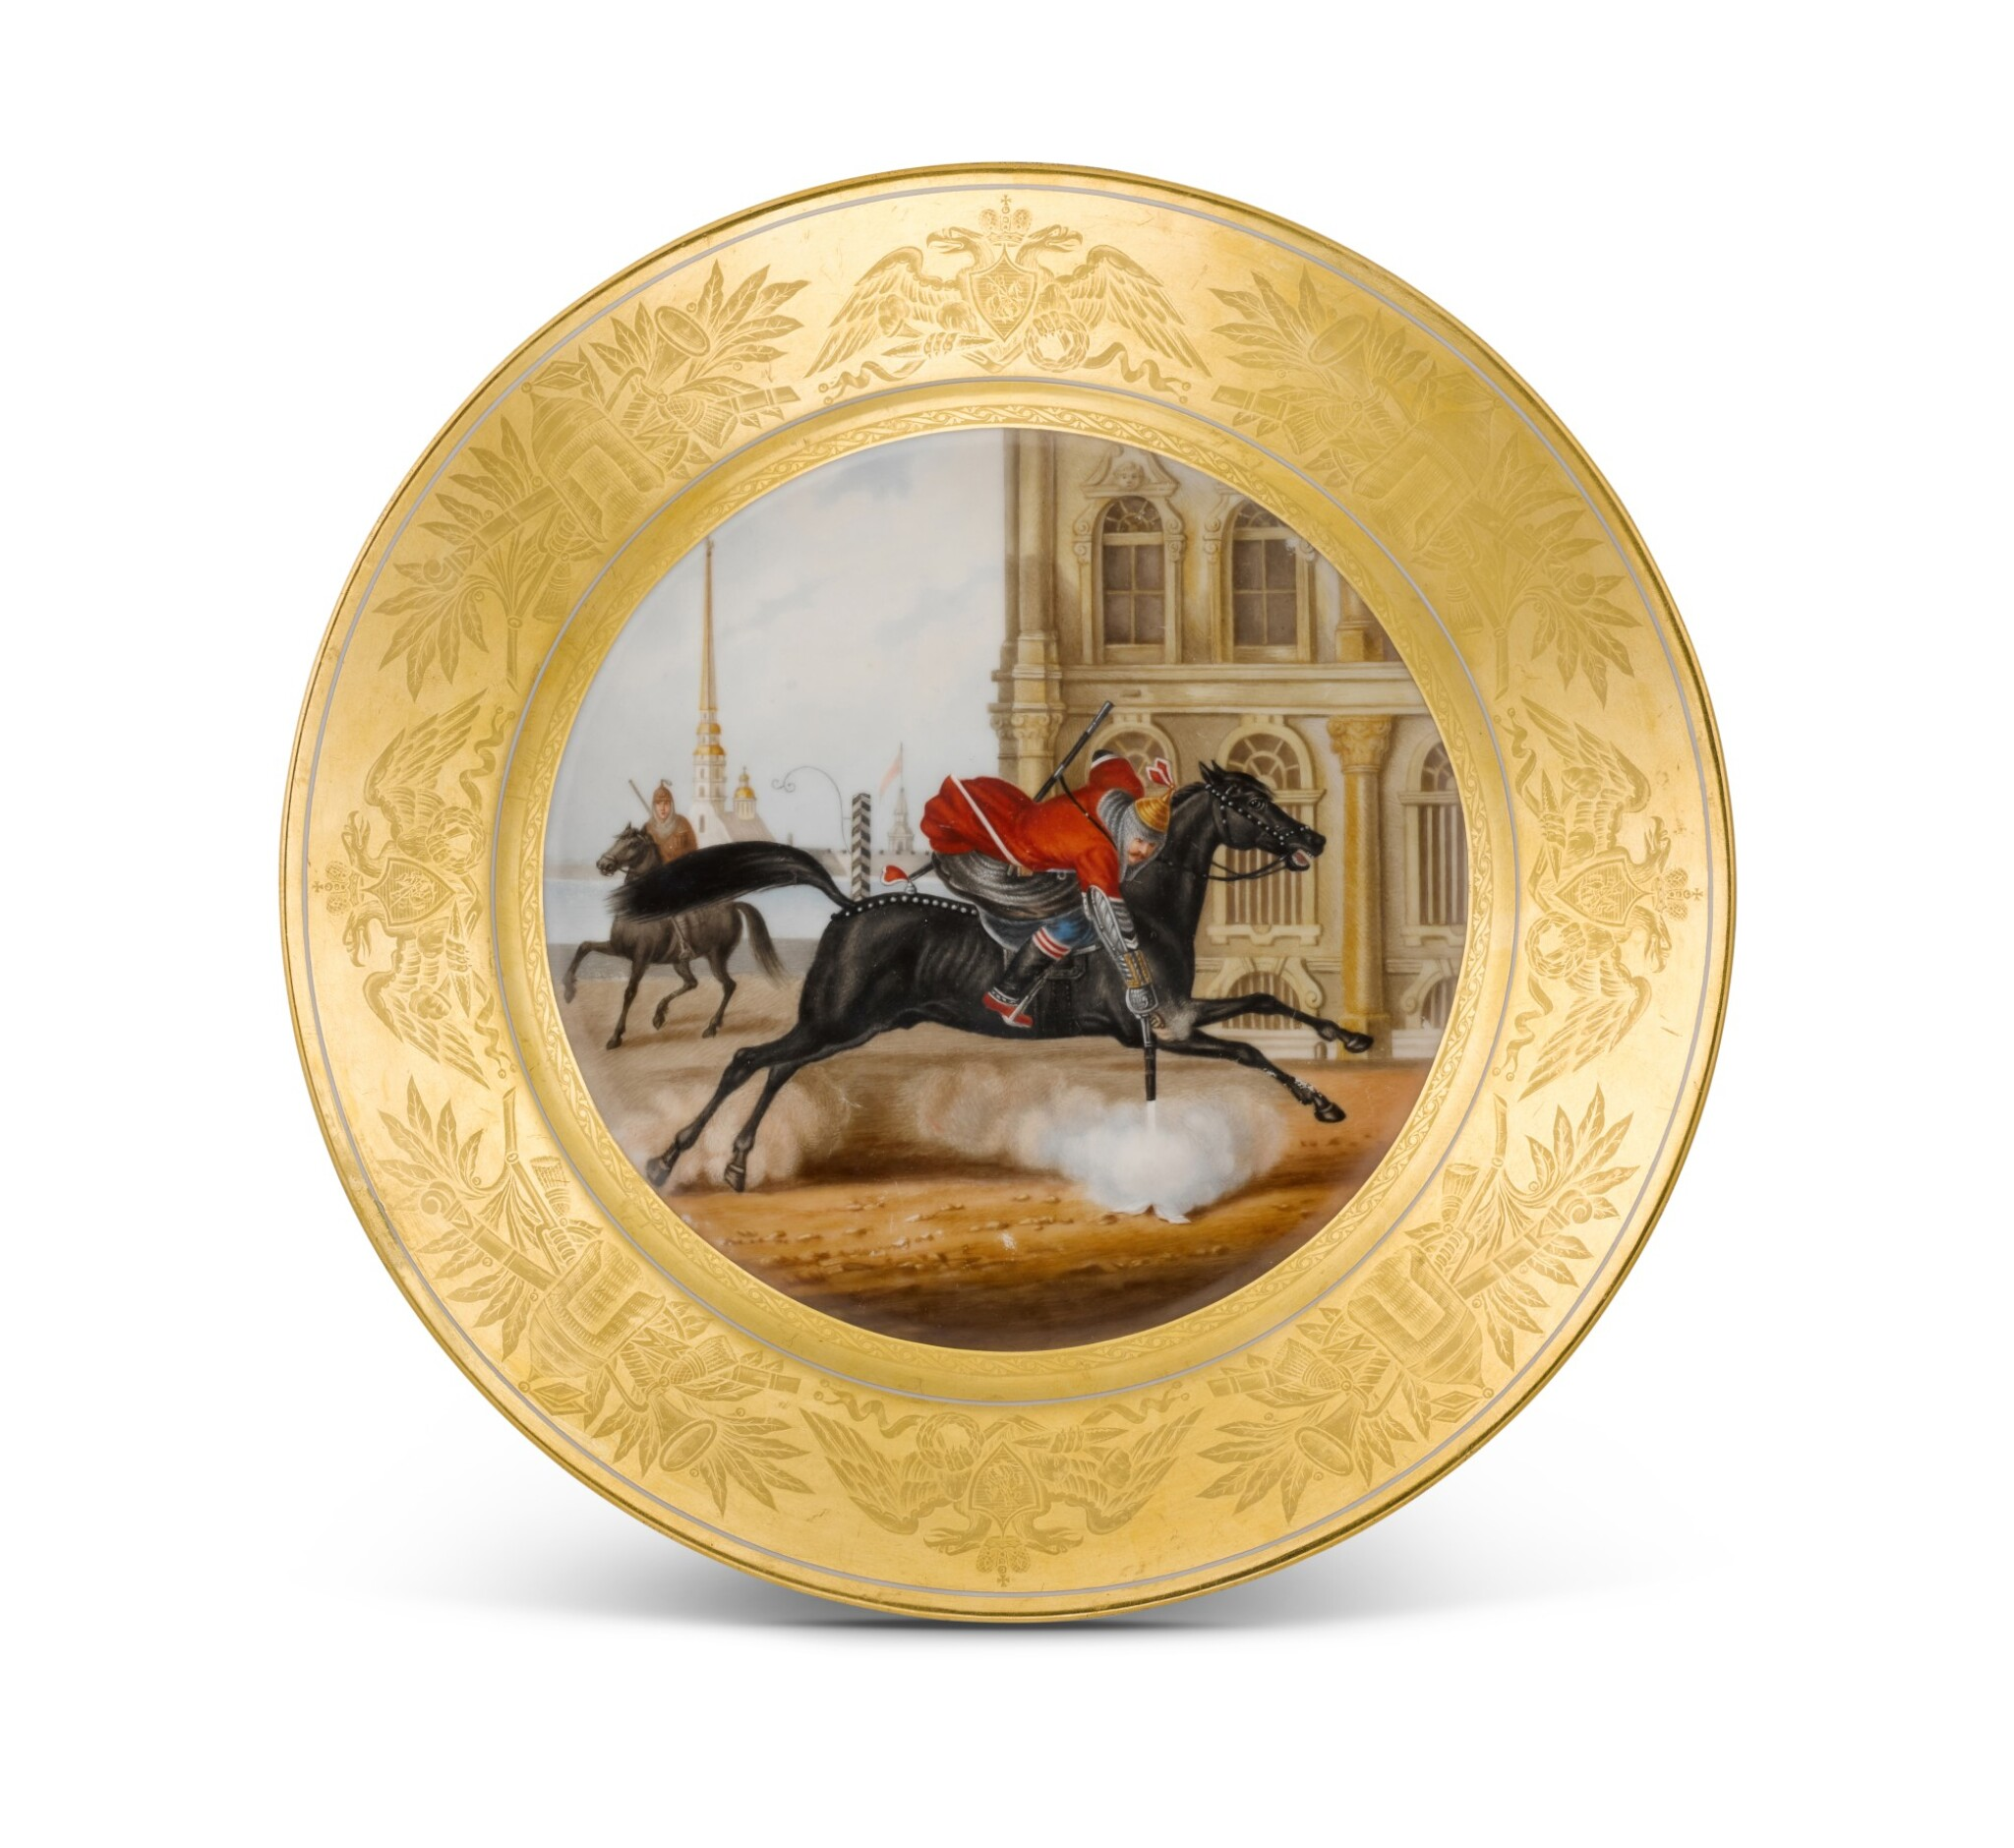 View full screen - View 1 of Lot 182. JUNKER OF THE LIFE-GUARDS CAUCASUS MOUNTAIN SQUADRON: A PORCELAIN MILITARY PLATE, IMPERIAL PORCELAIN FACTORY, ST PETERSBURG, PERIOD OF NICHOLAS I (1825-1855), 1833.